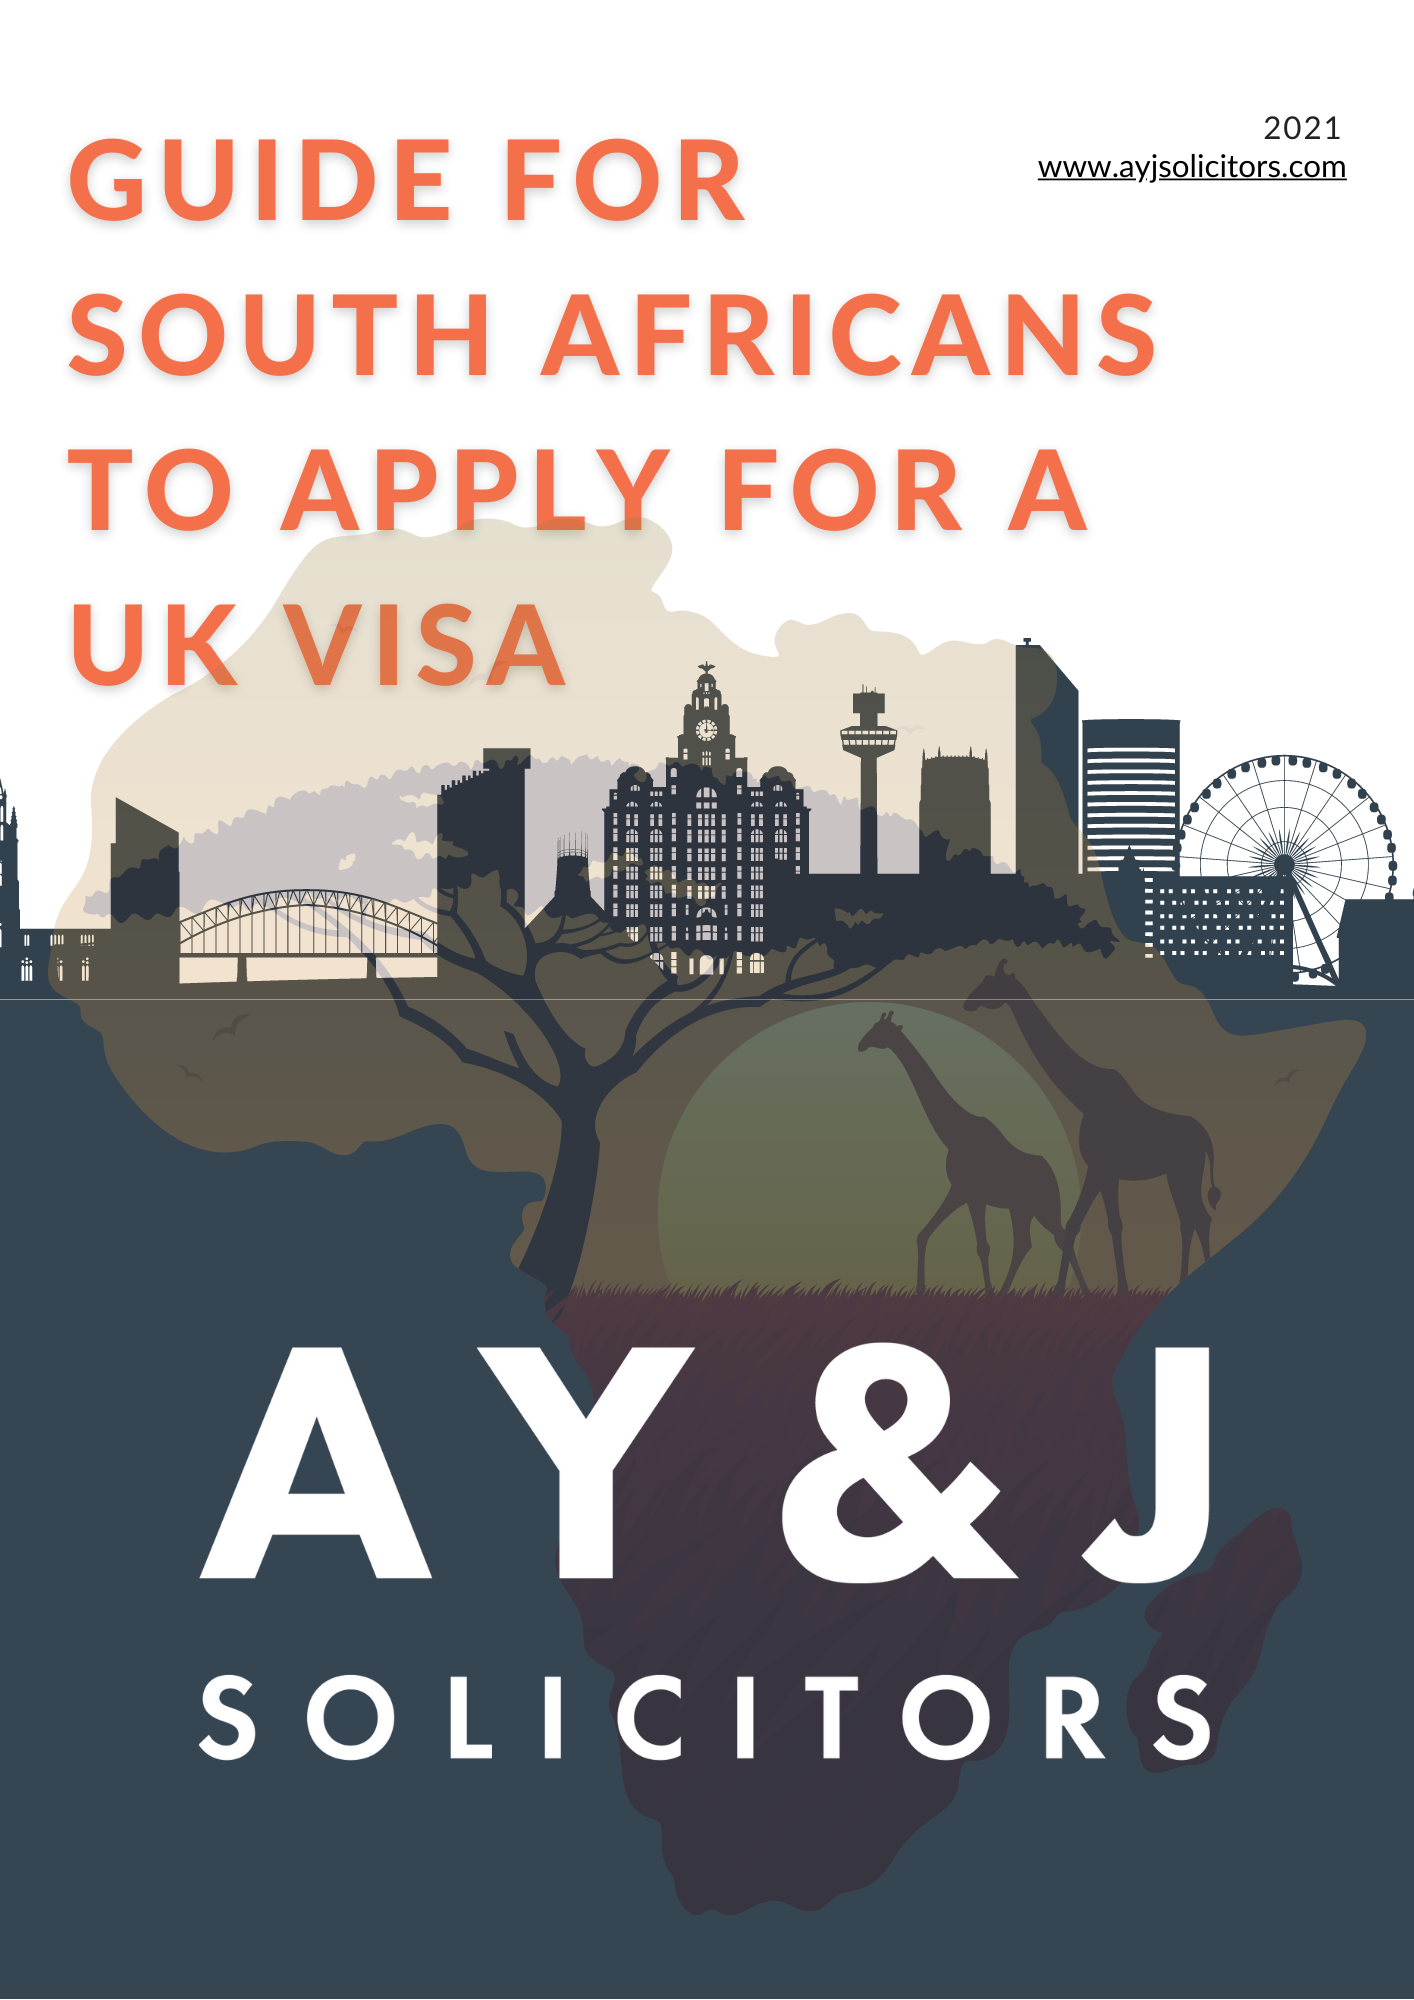 Guide for South Africans to apply for a UK Visa